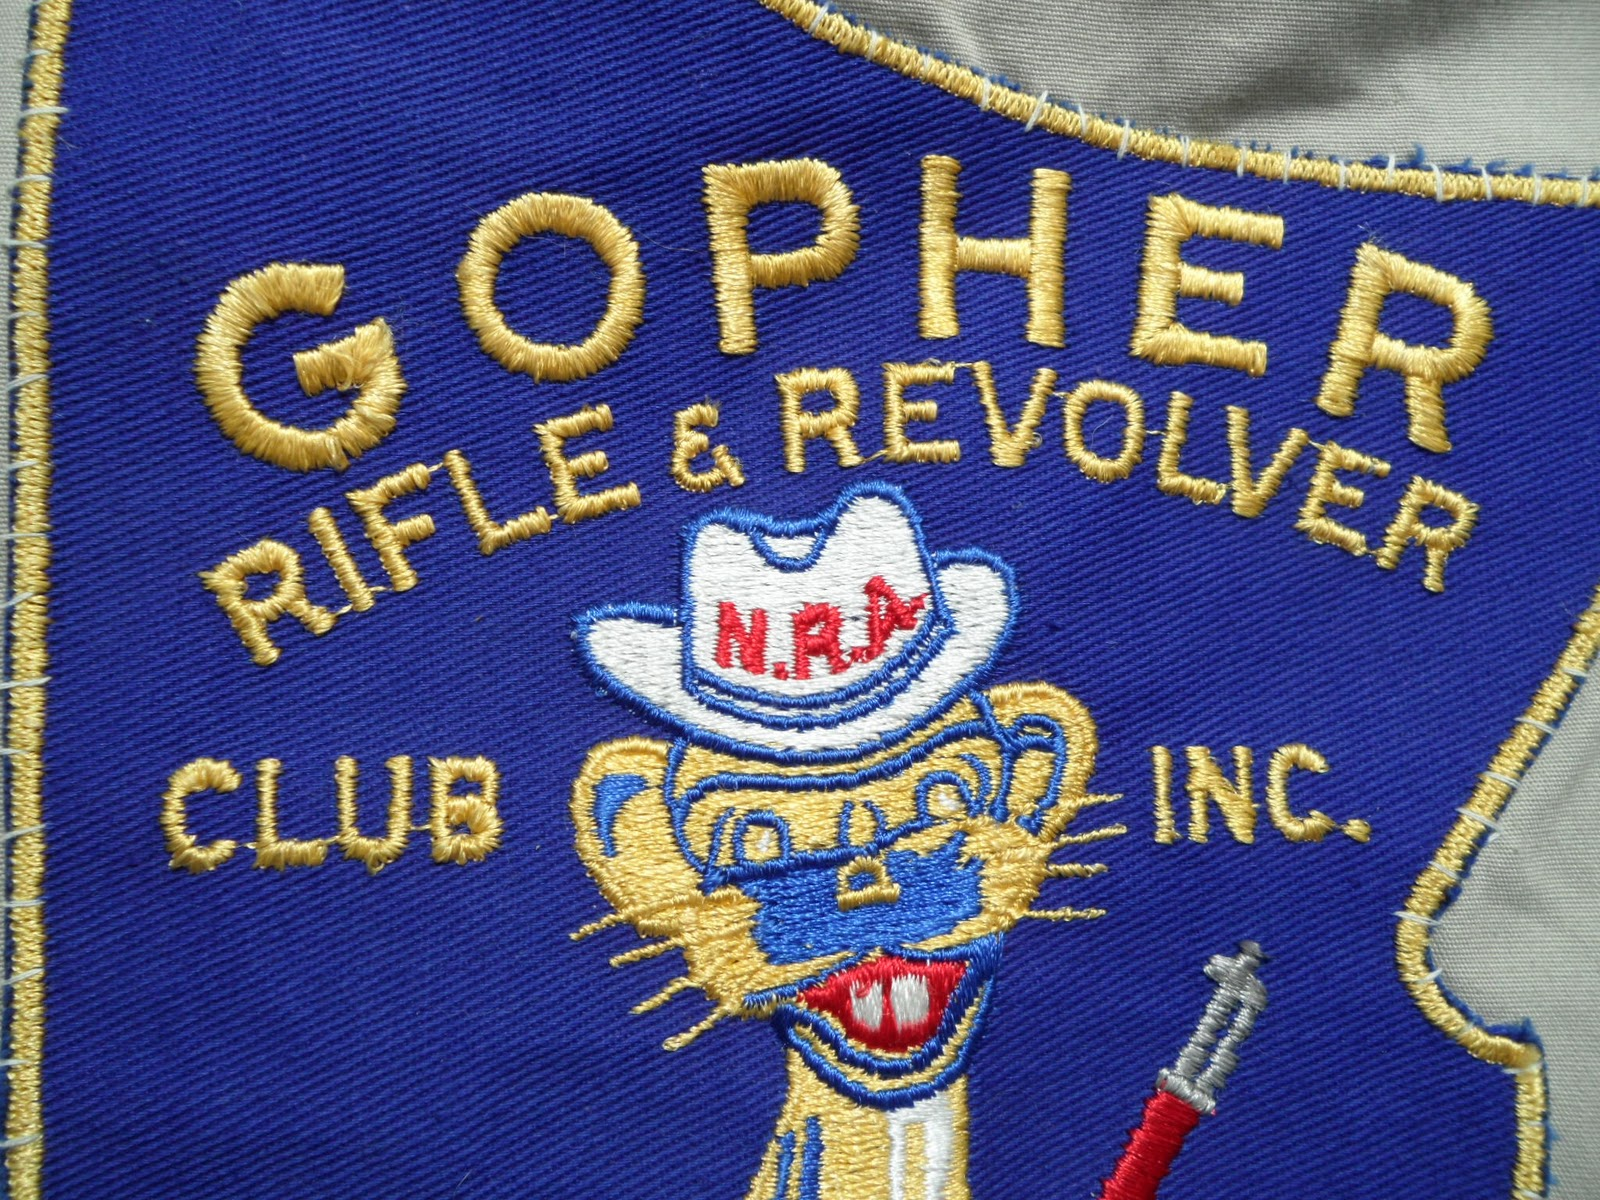 darn tootin shootin gopher with rifle